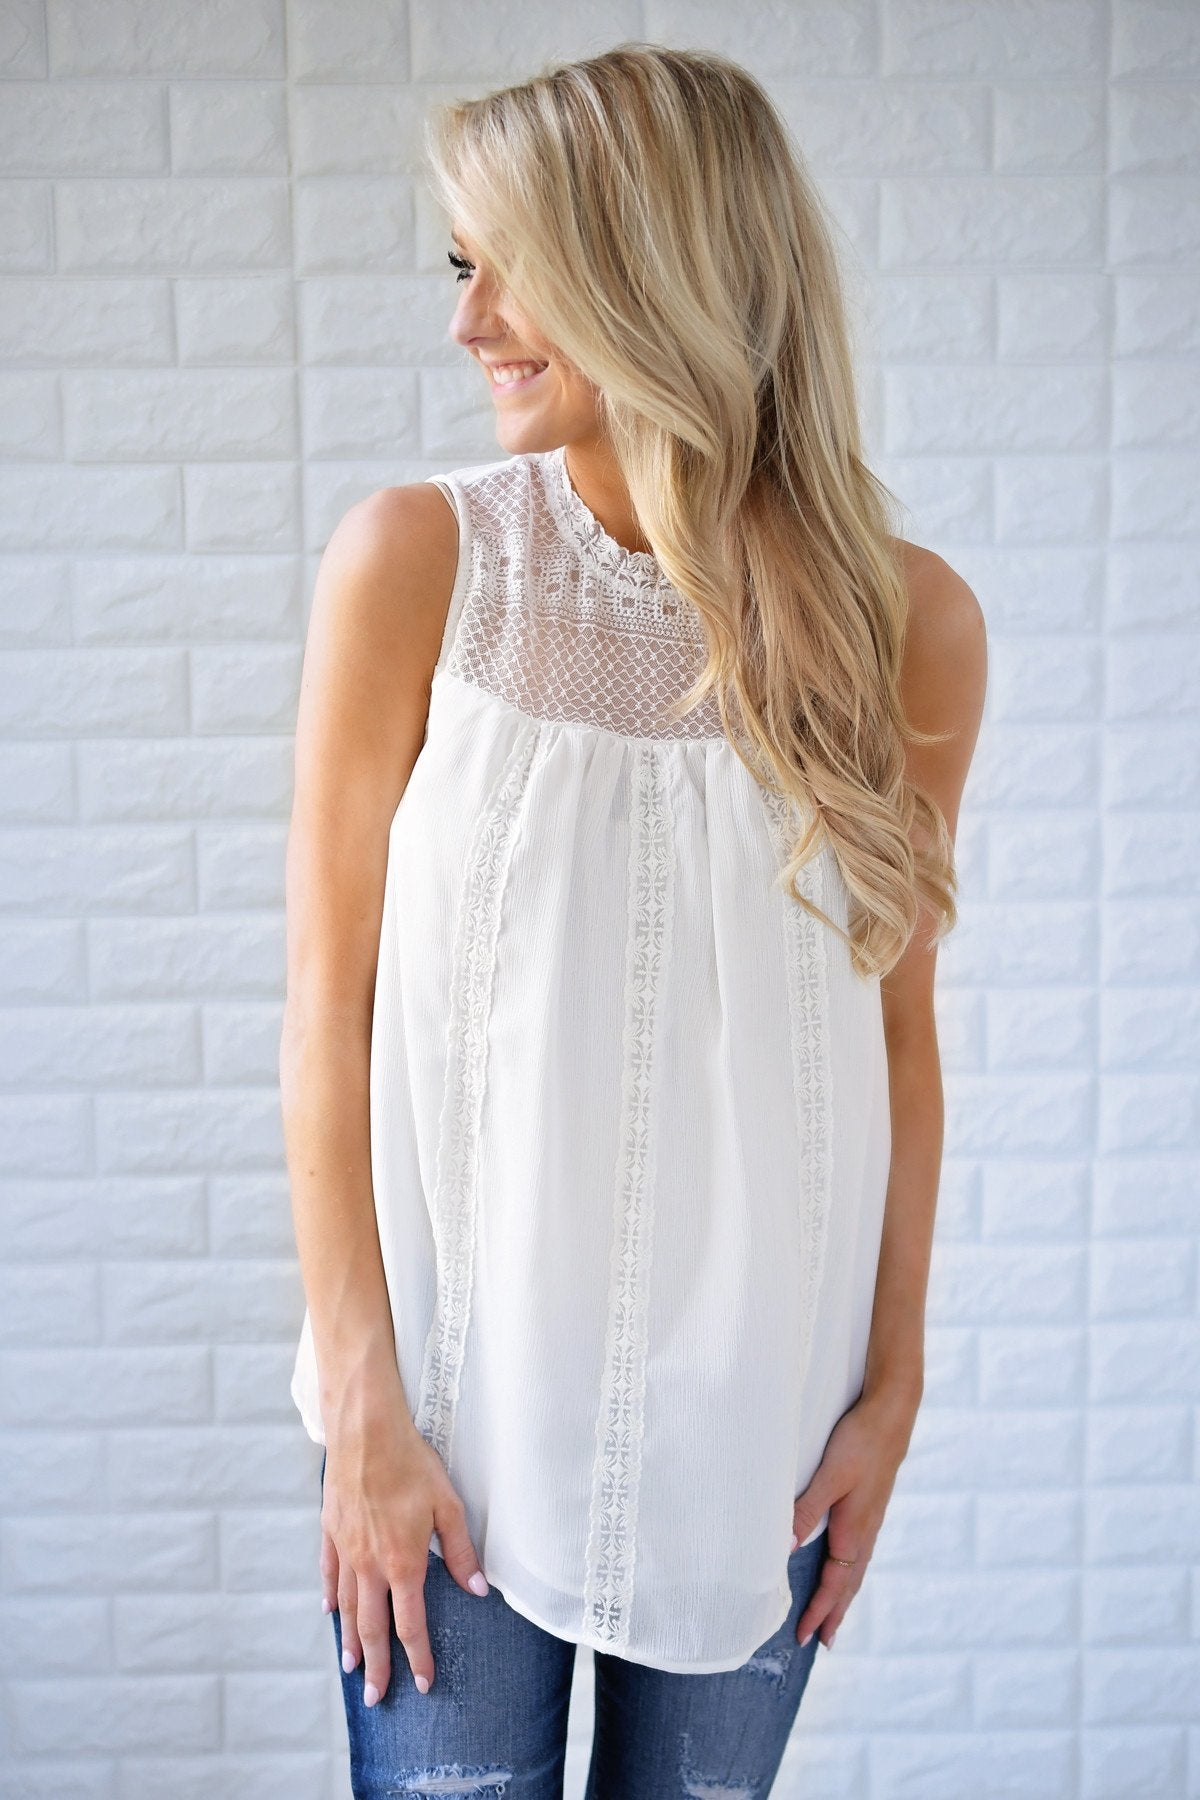 White Lace Tank Top